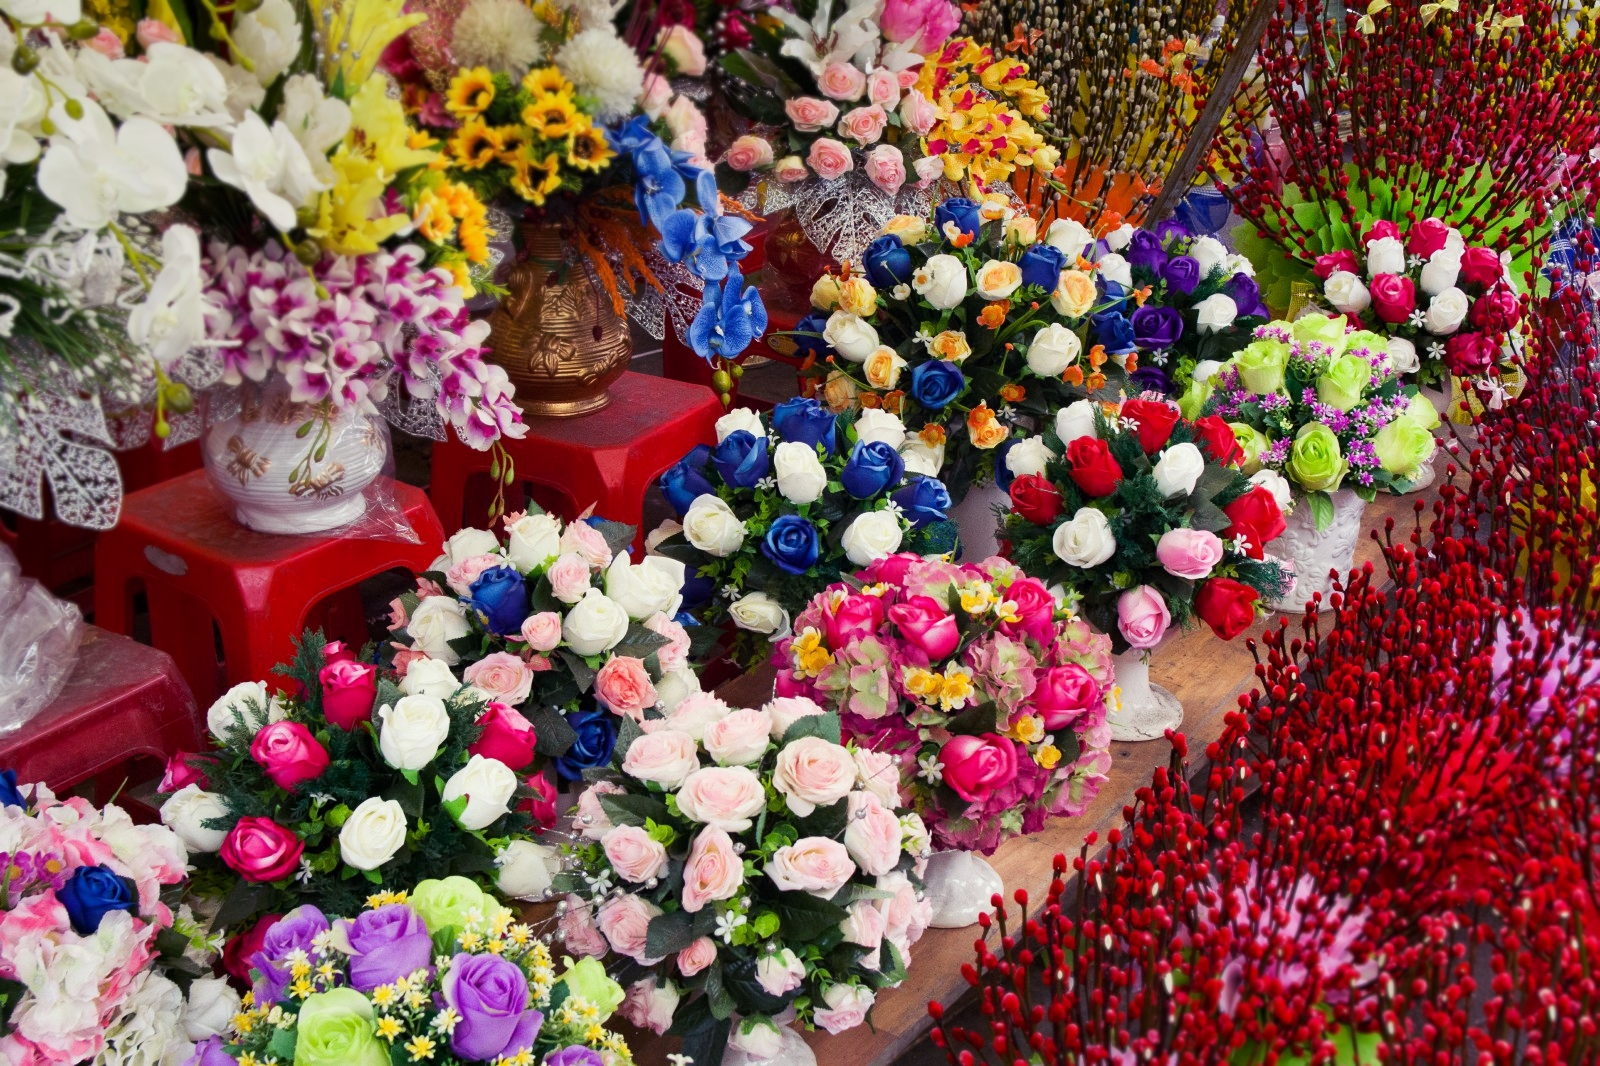 The Complete Guide to Ho Thi Ky Flower Market in Saigon